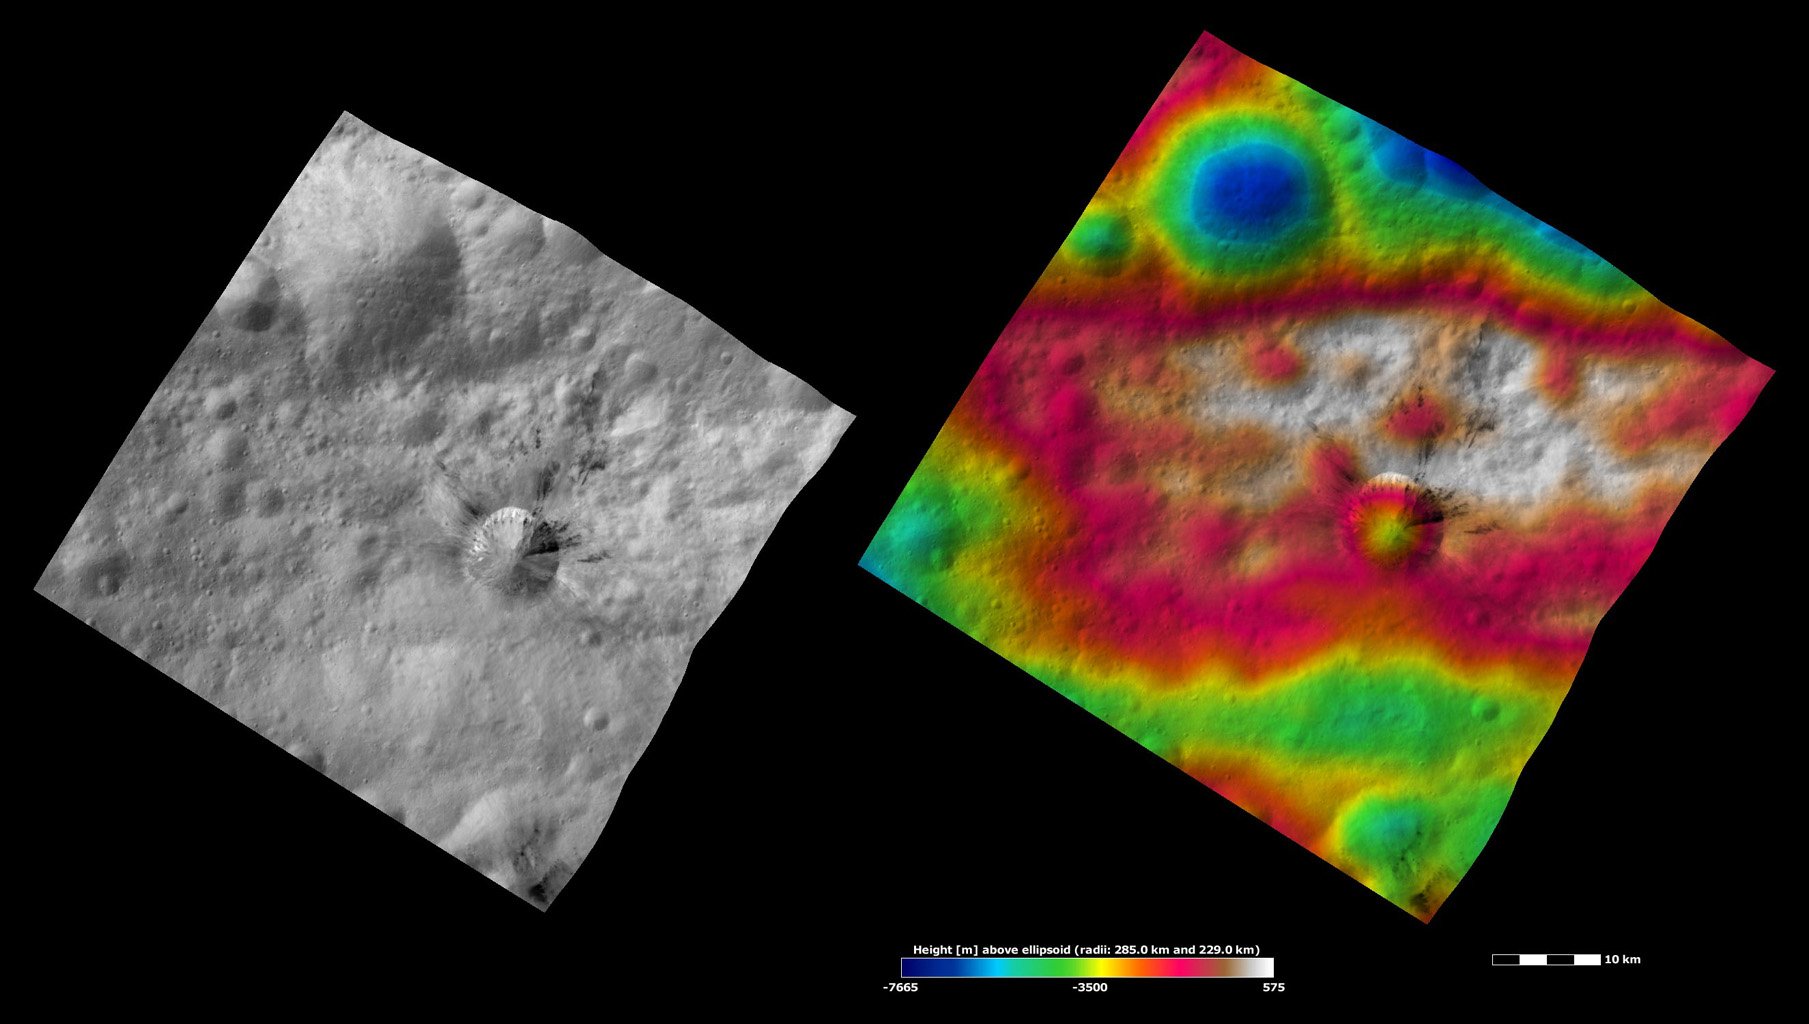 Rubria Crater, Apparent Brightness and Topography Images